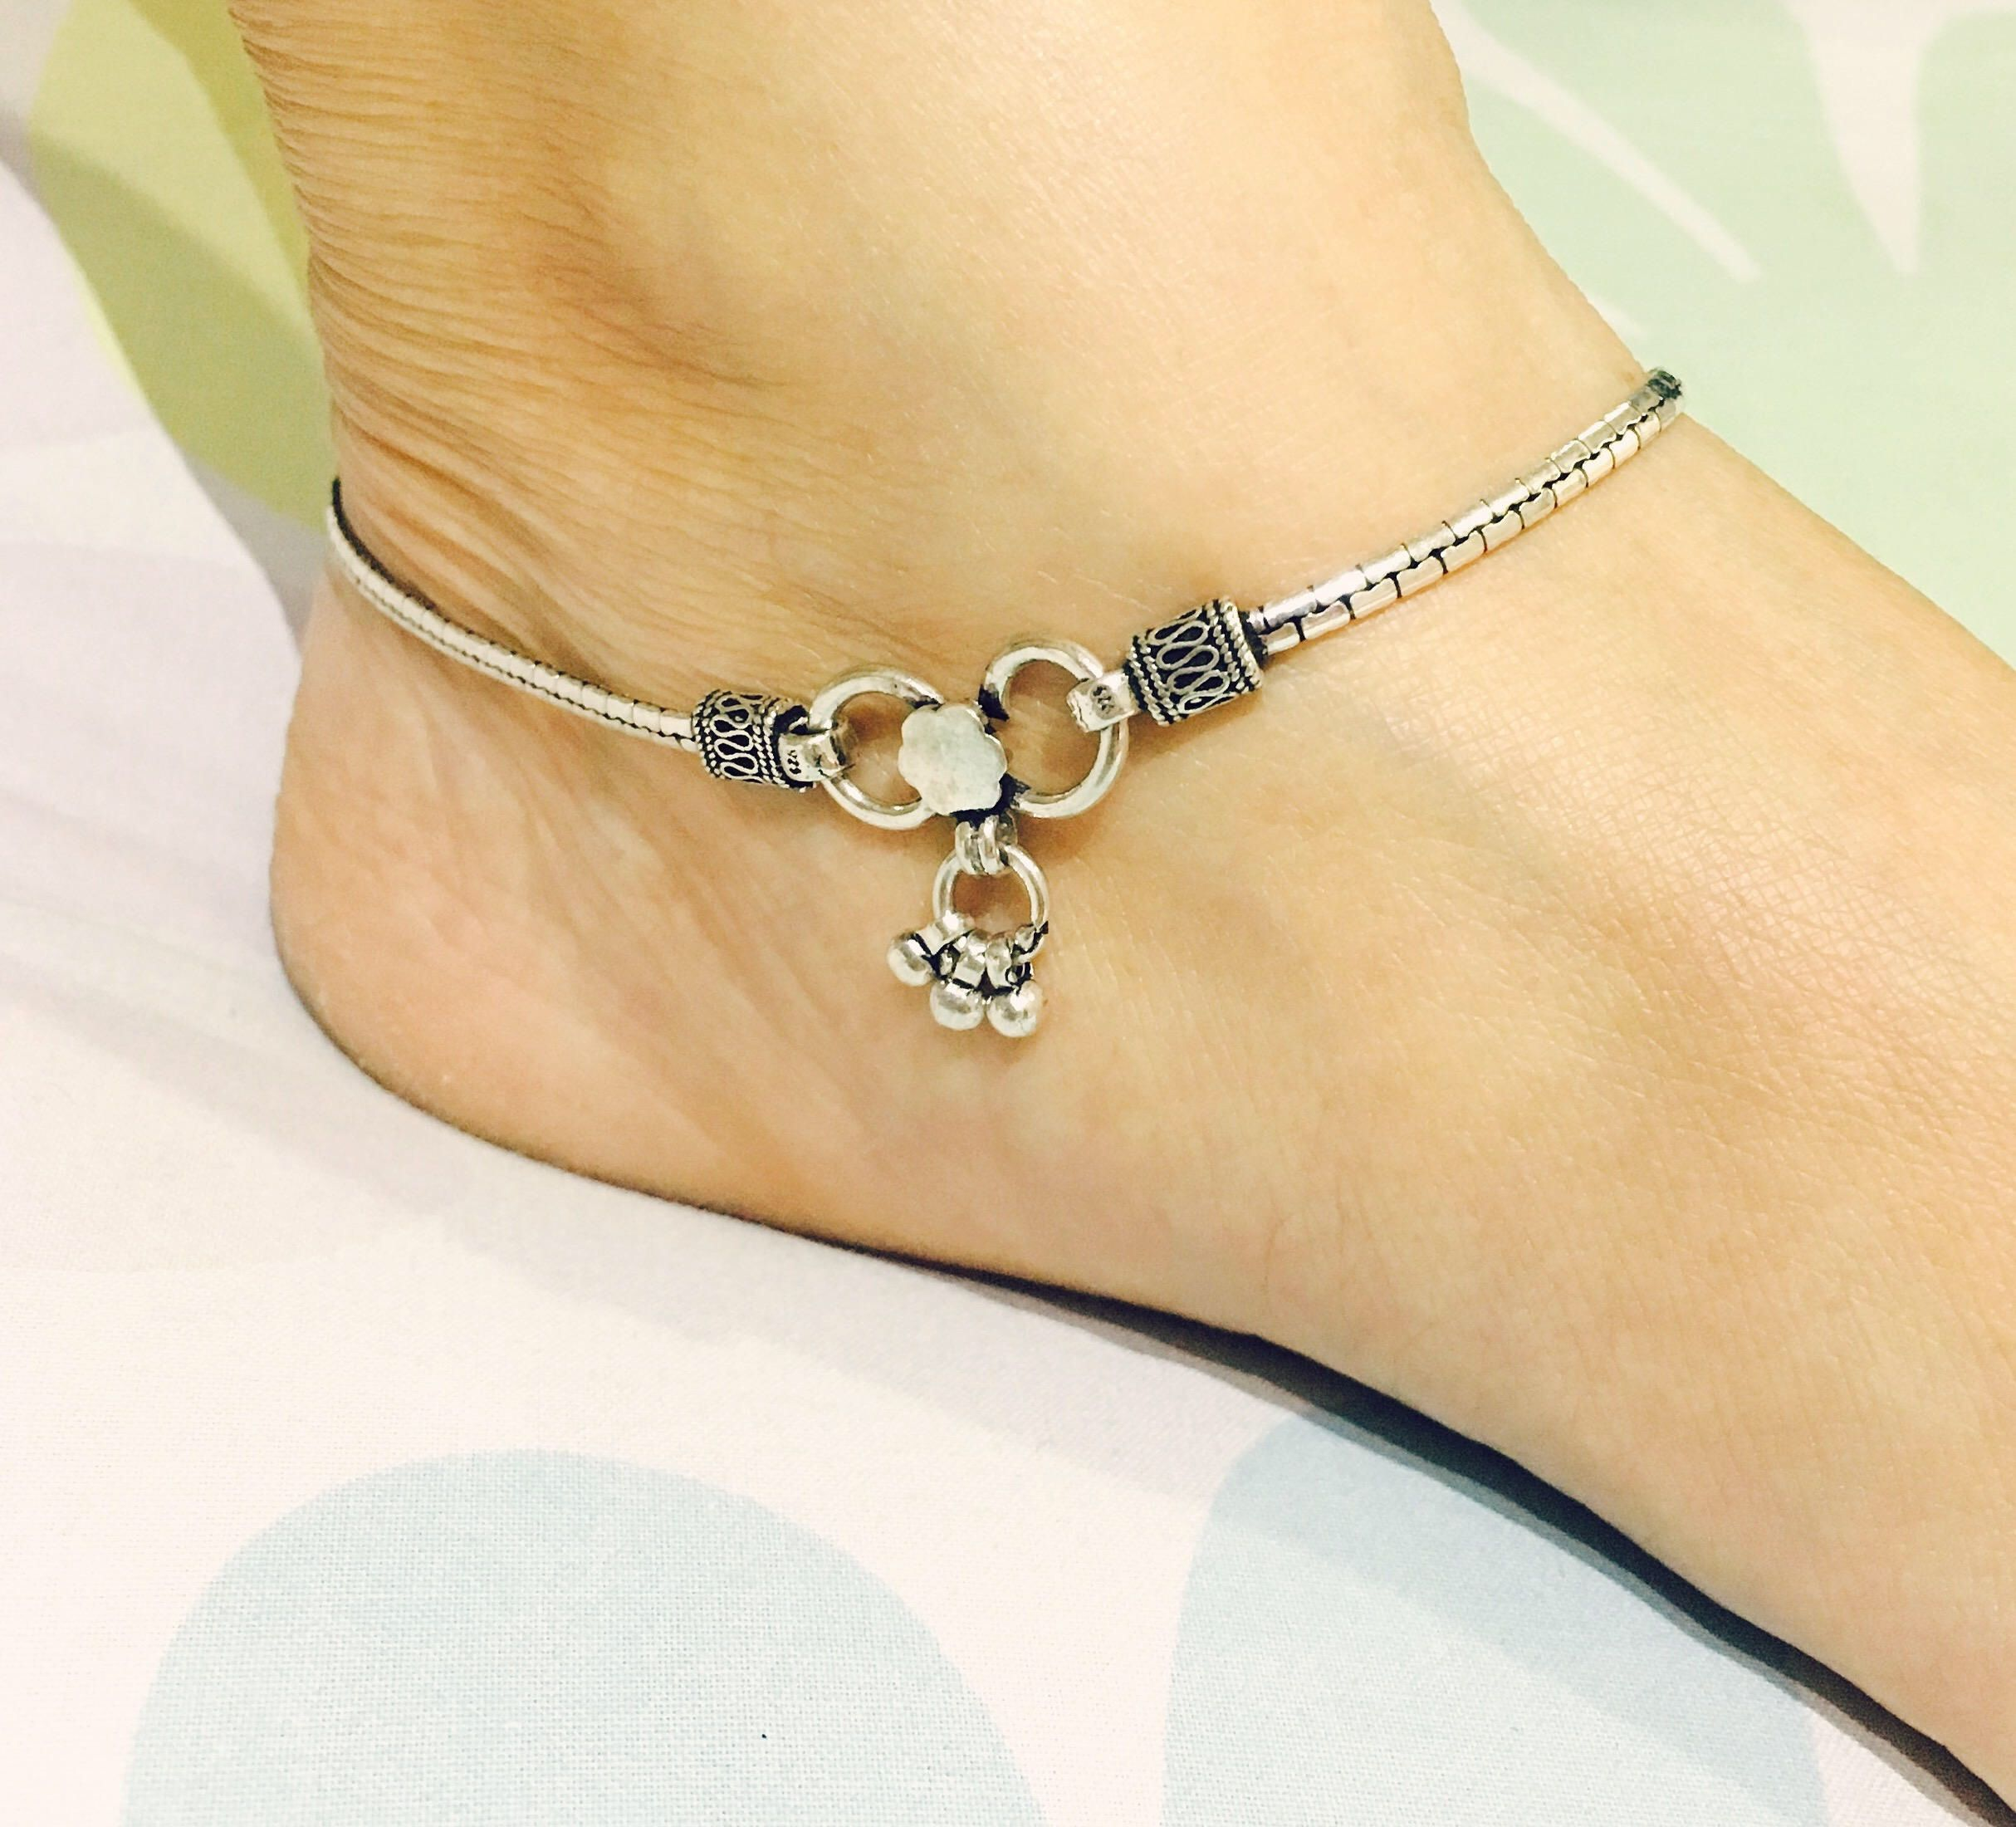 anklets in anklet wholesale sterling daisy lengths w with silver adornment lovely jewelry collections and rolo model bracelets beads bracelet faceted bar chain charm ankle photo enamel products round available